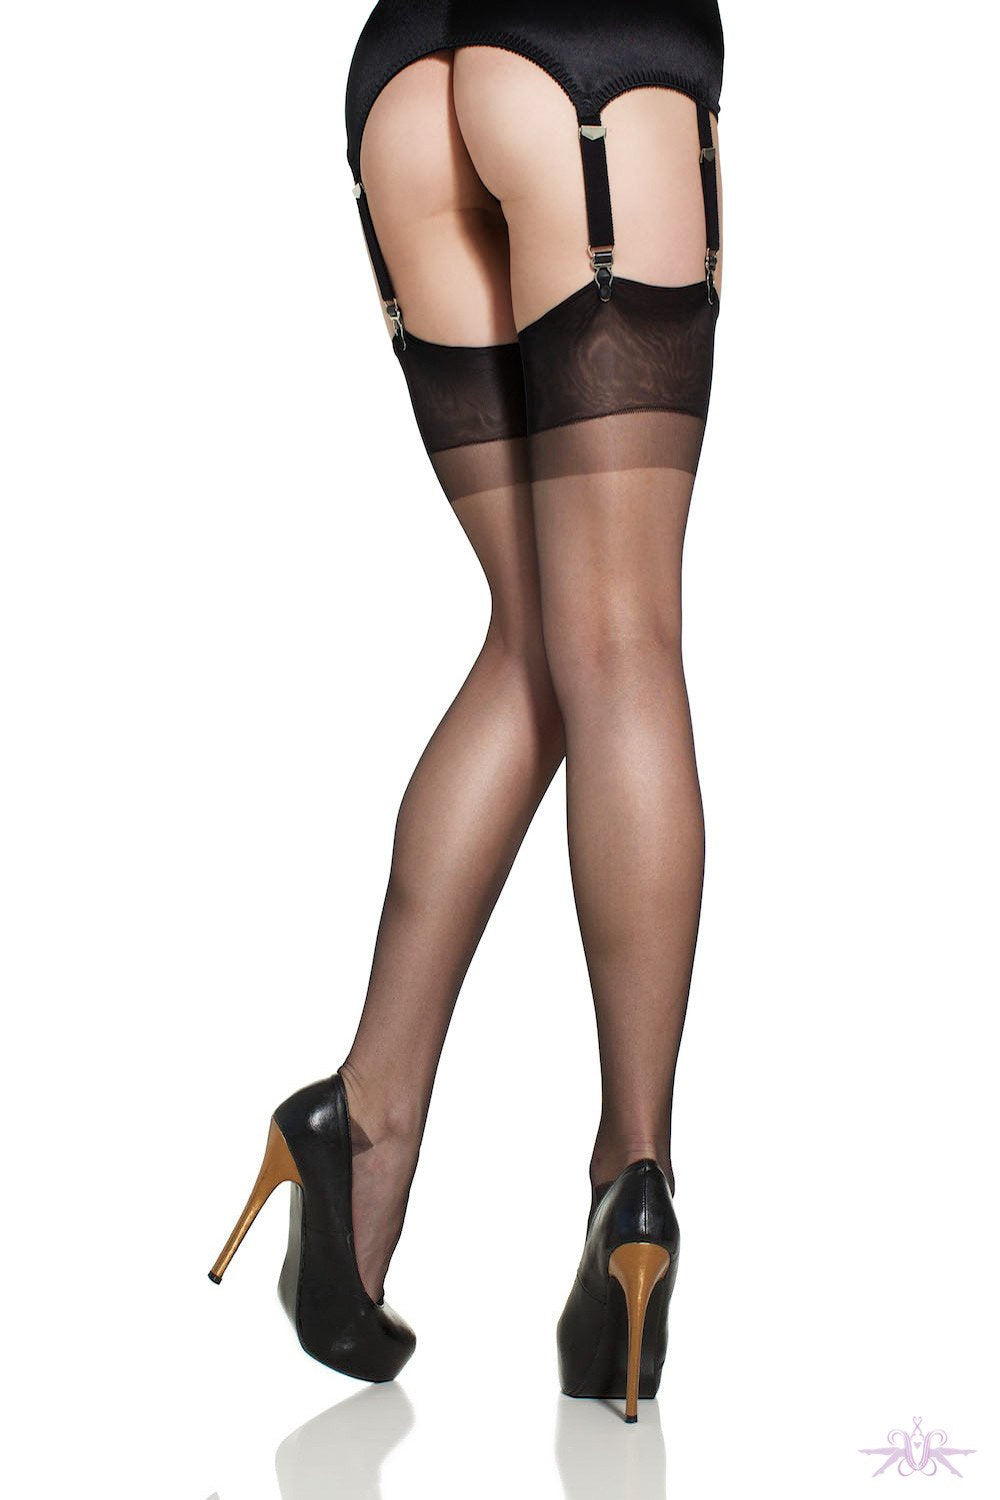 Gio Reinforced Heel and Toe Nylon Stockings - The Hosiery Box